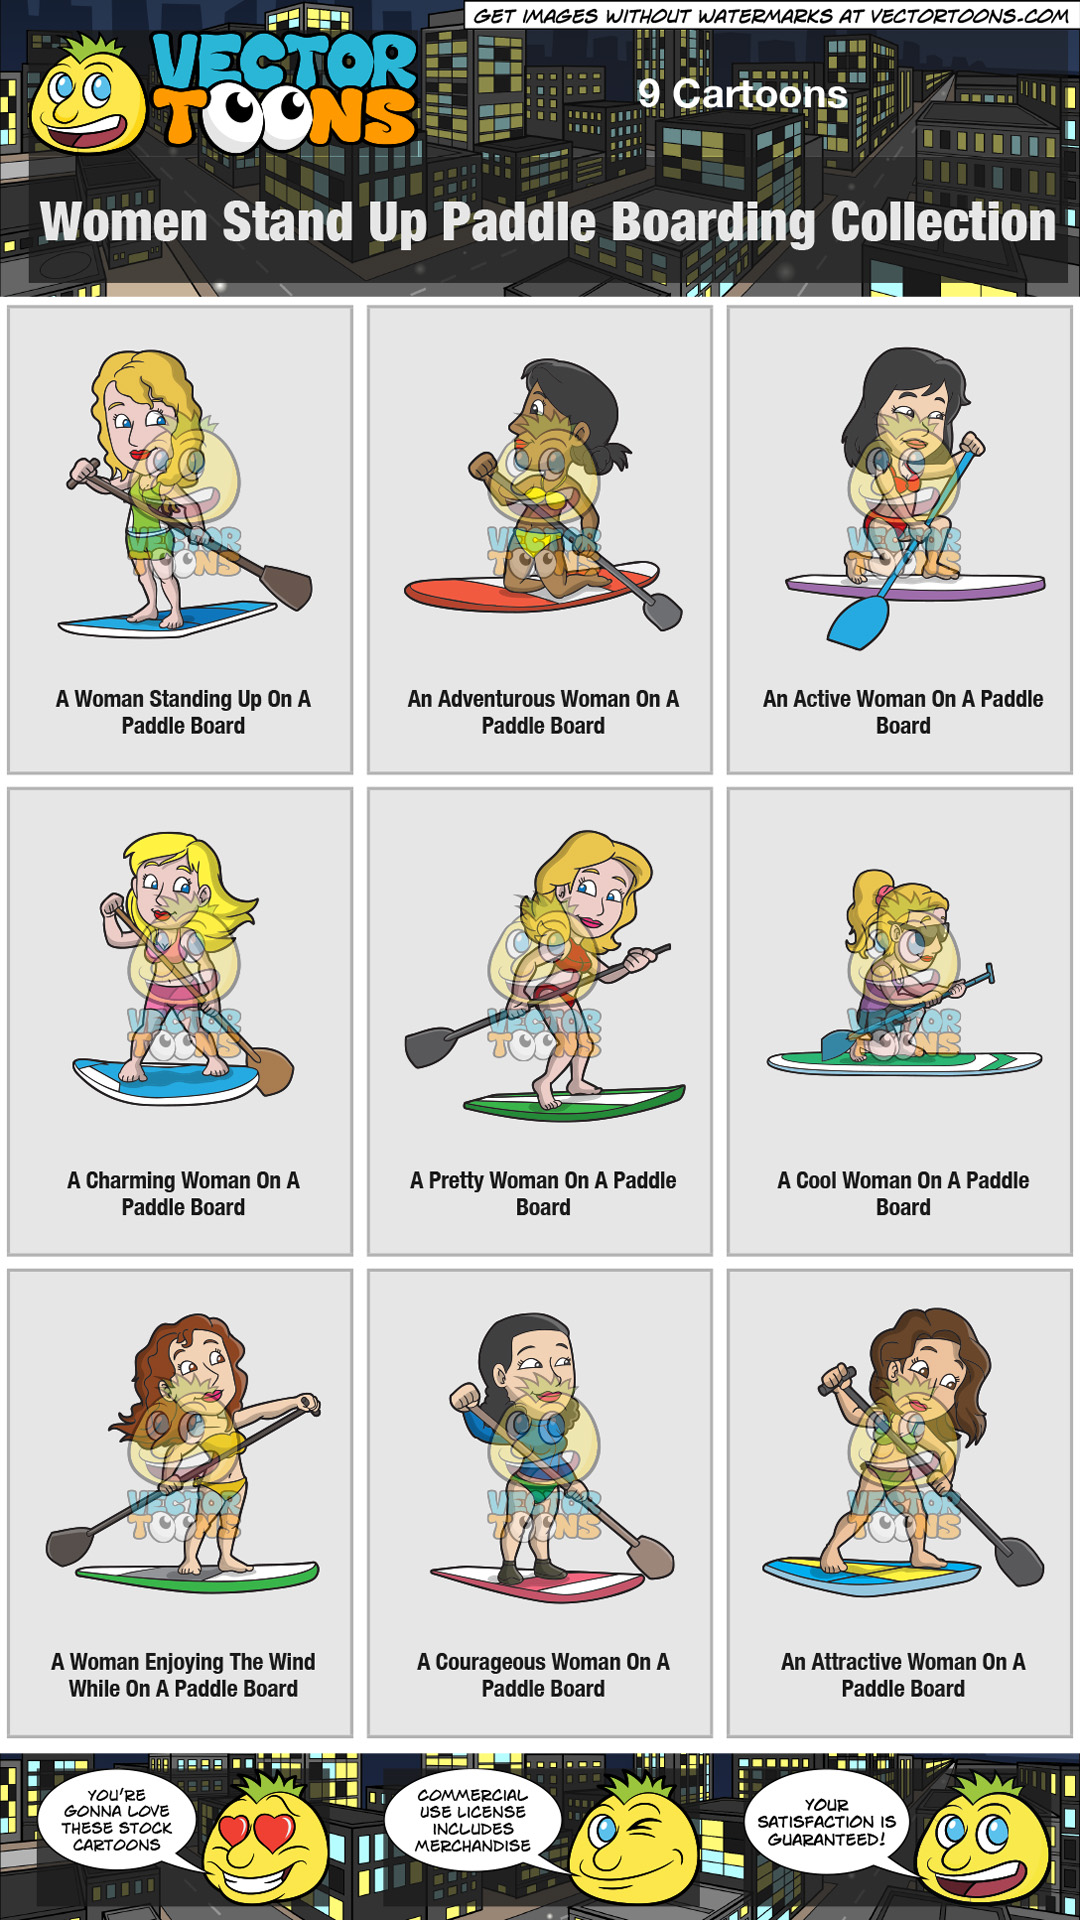 Women Stand Up Paddle Boarding Collection thumbnail